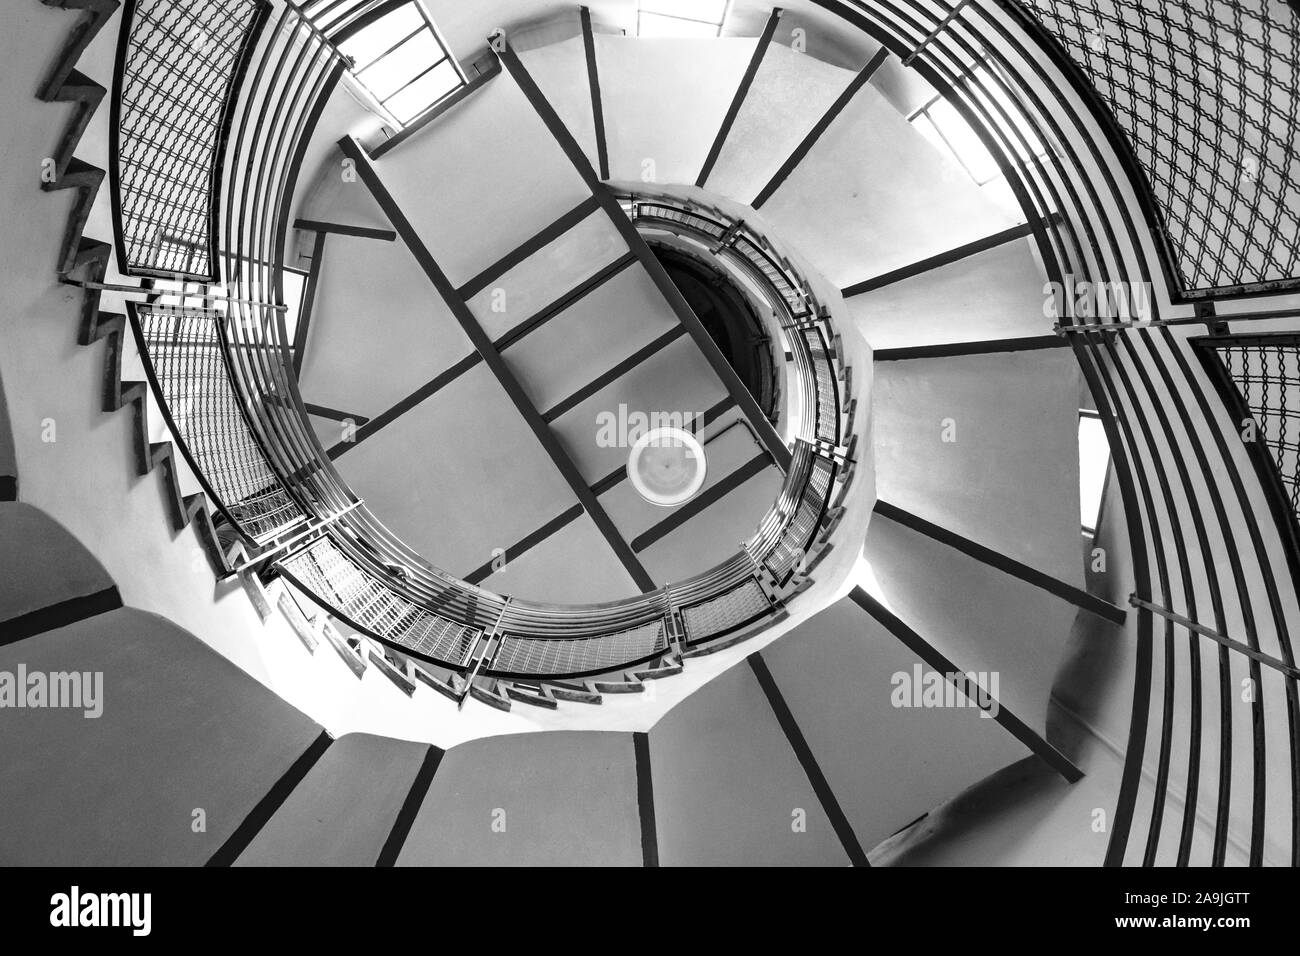 Black and white photograph of spiral ladders Stock Photo